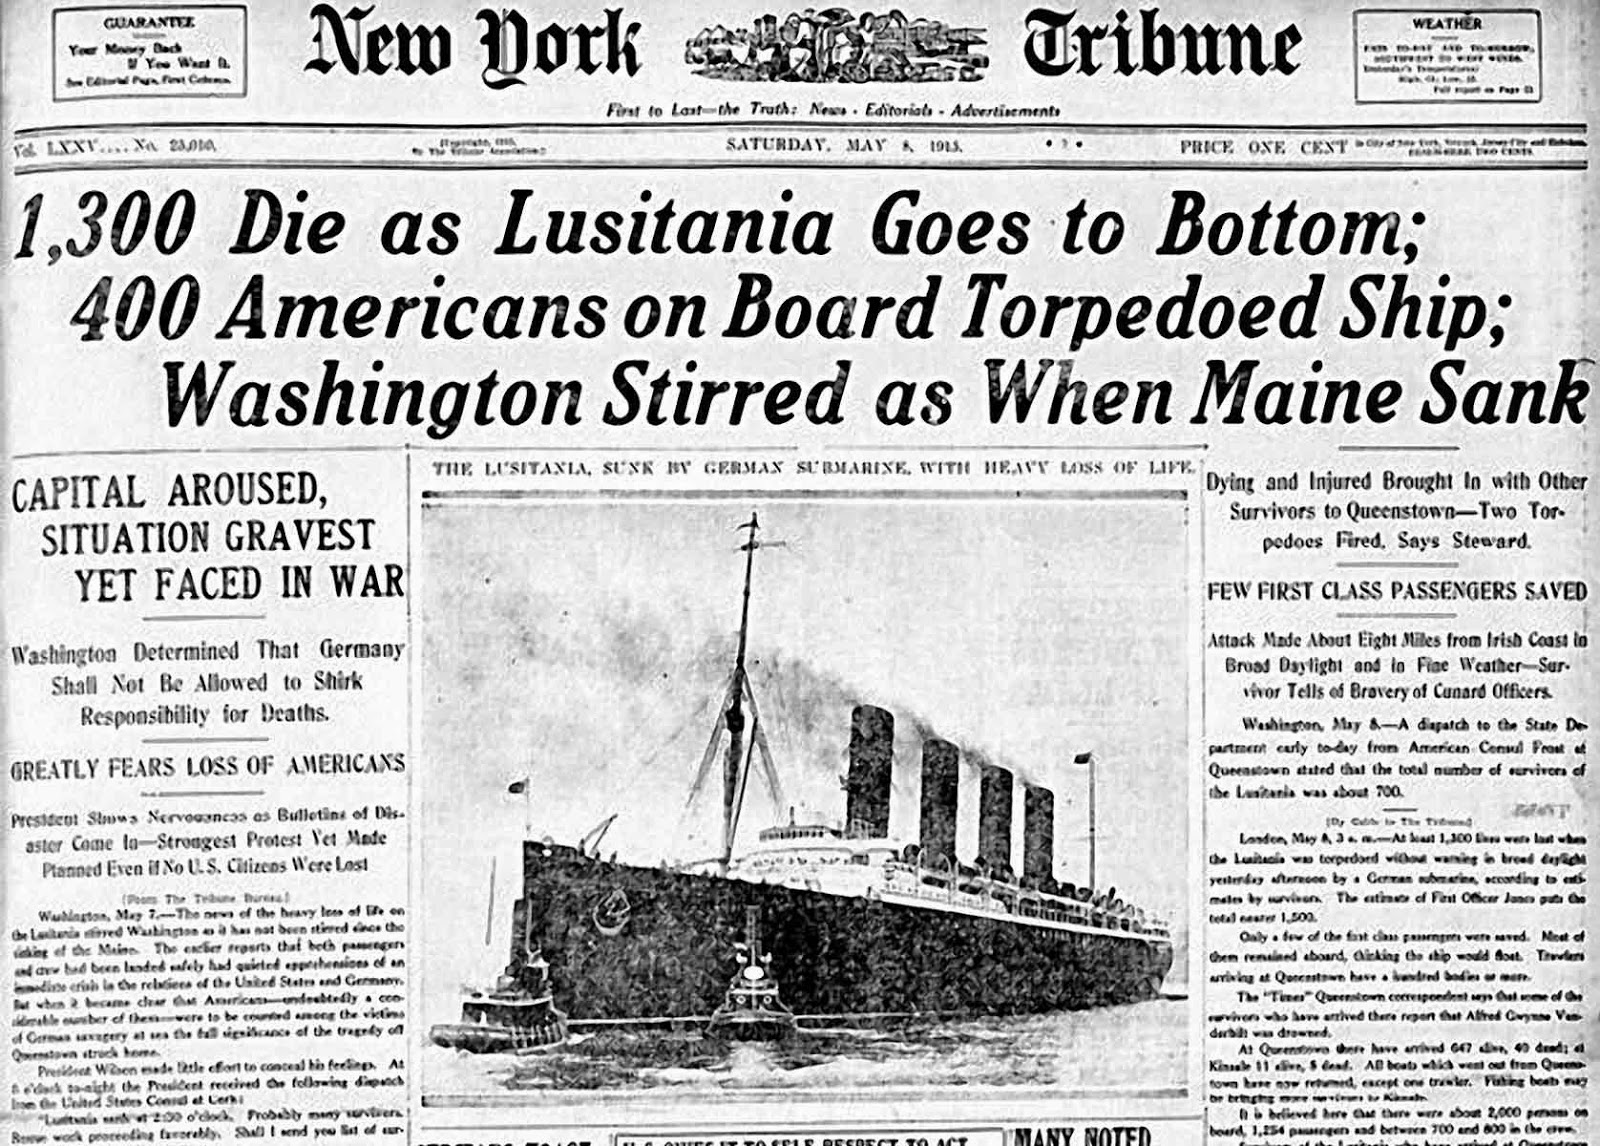 a history of the sinking of the lusitania in germany The collection includes an illustrated history of images from the battlefields and dramatic coverage of casualties from the 1915 sinking of the lusitania by a.